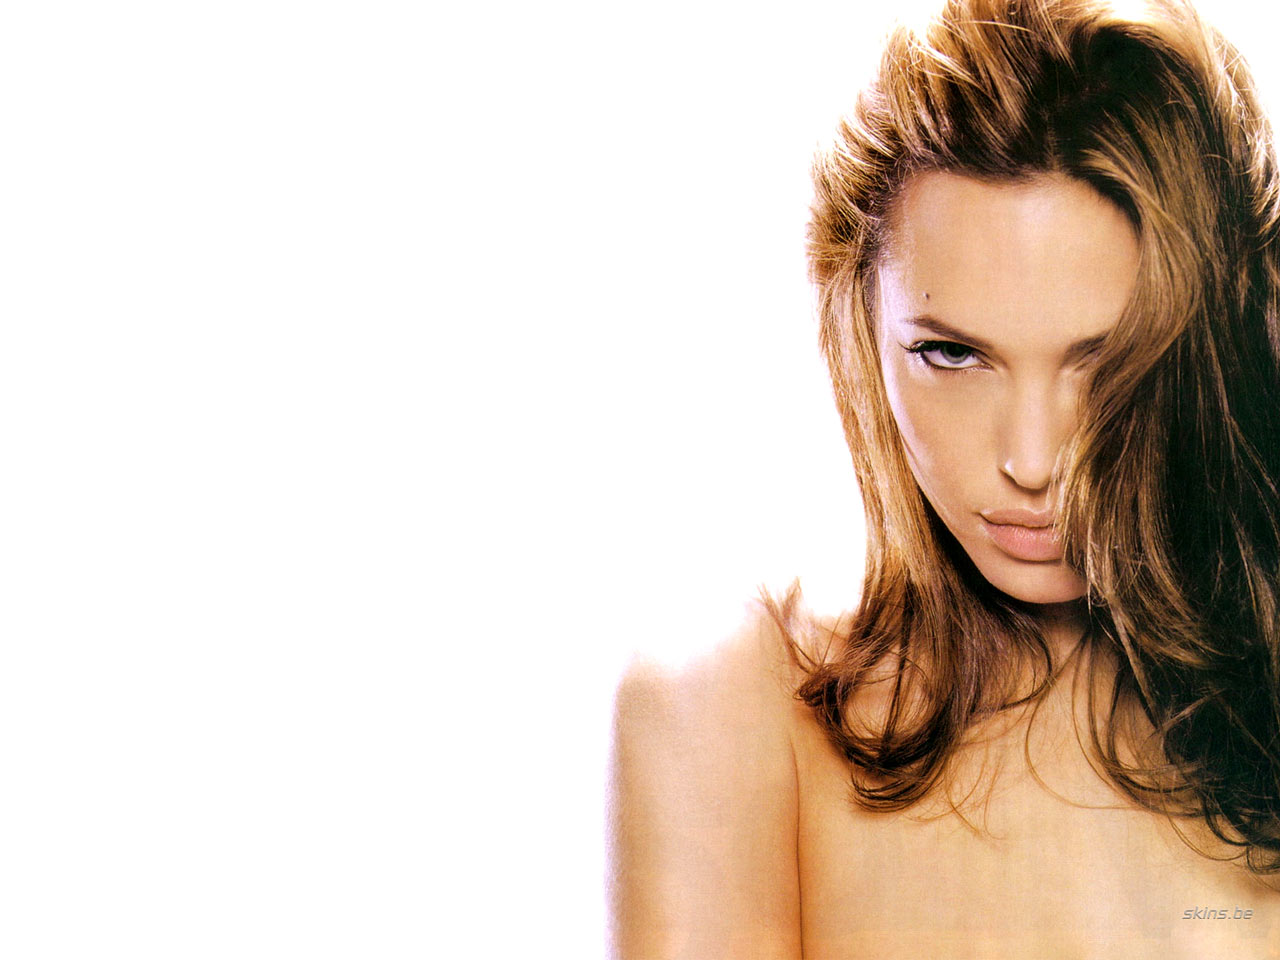 Angelina Jolie Hot Bold Sexy Pics in Hollywood Actress Groups